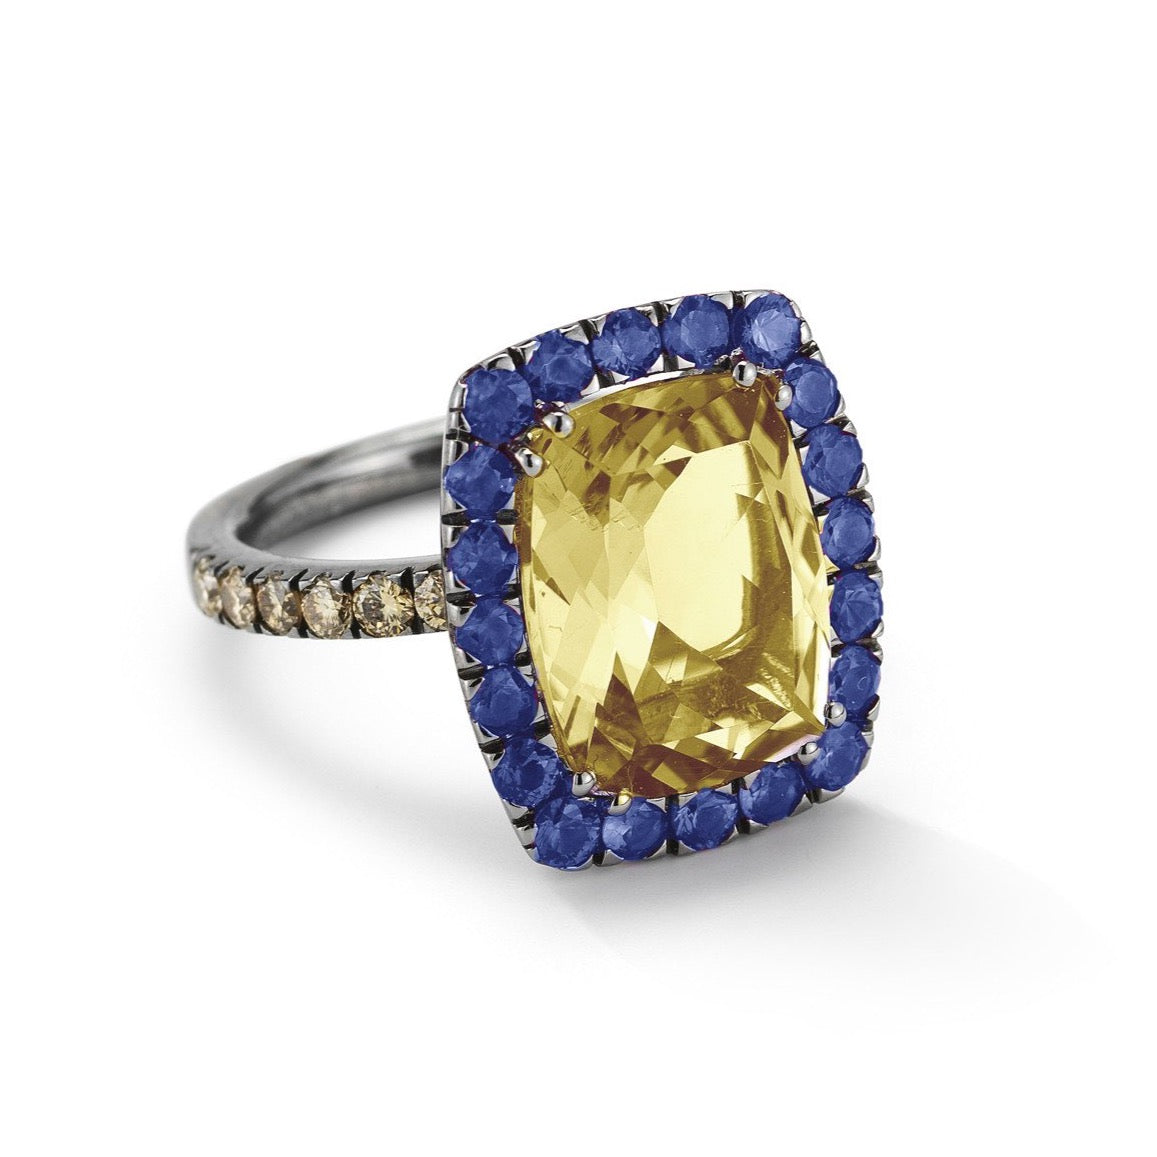 "A & Furst ""Dynamite"" Cocktail Ring with Citrine, Sapphires and Brown Diamonds, 18k Blackened Gold."